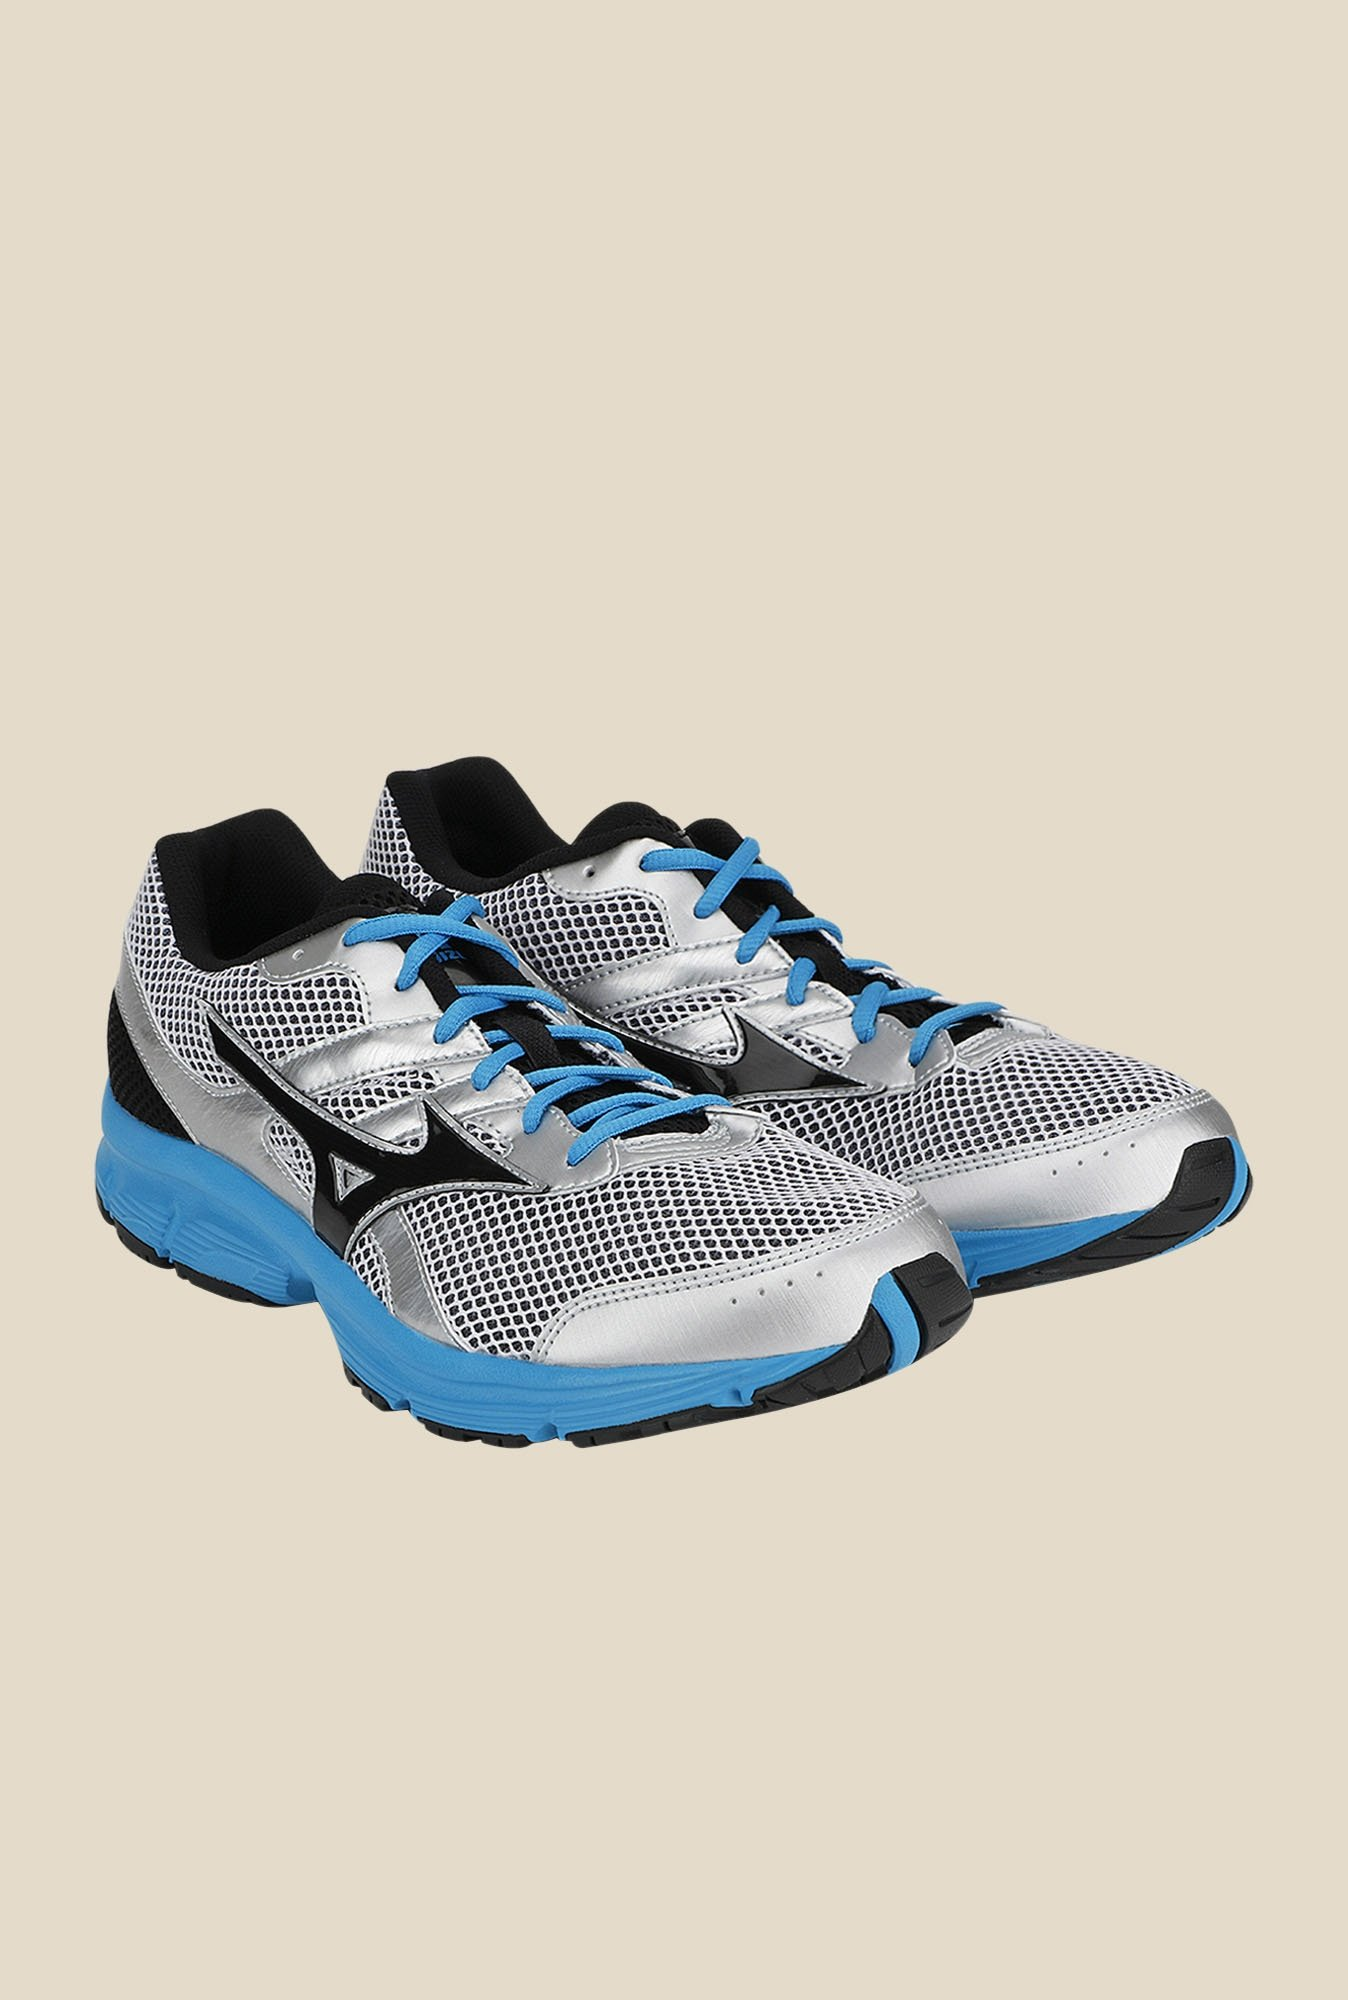 Mizuno Spark Silver & Black Running Shoes